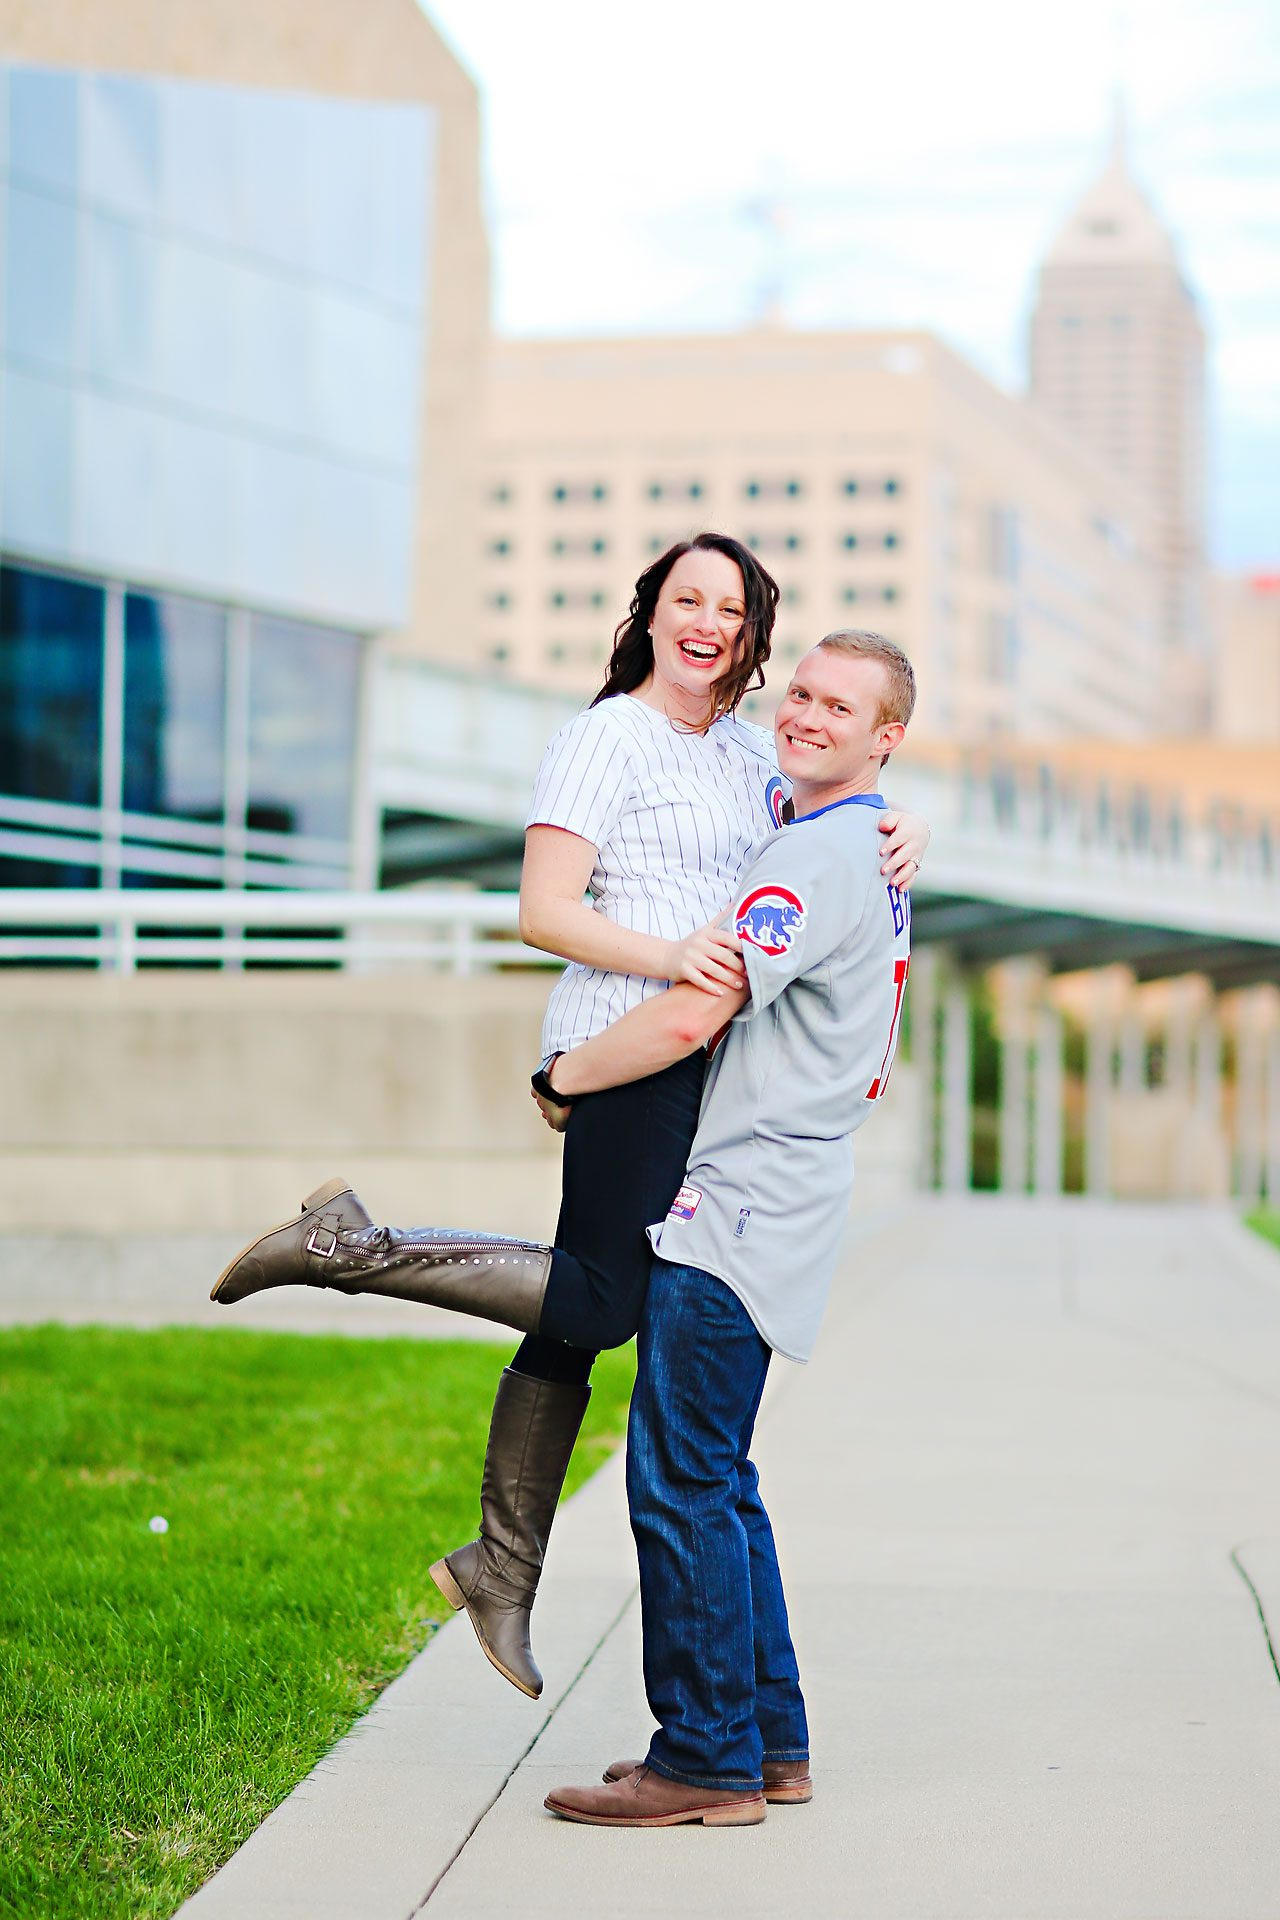 stephanie zach butler university engagement session 096